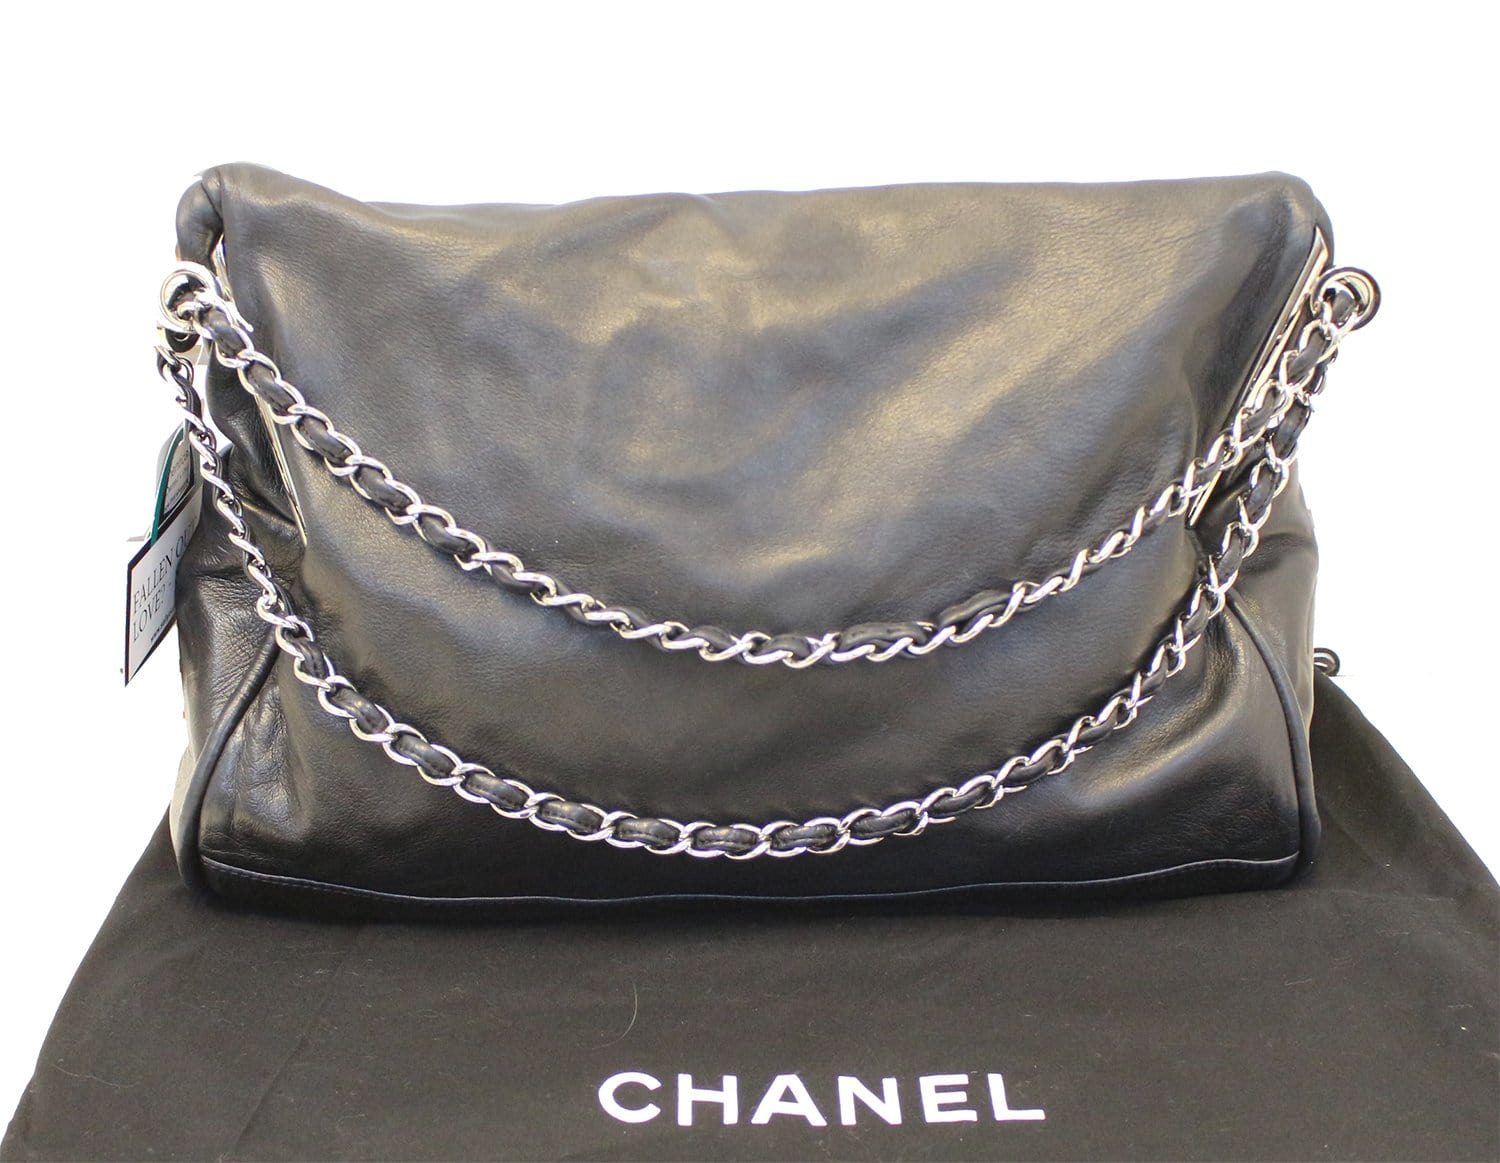 00dbfb7aebb5bf CHANEL Large Ultimate Soft Hobo Black Leather Bag